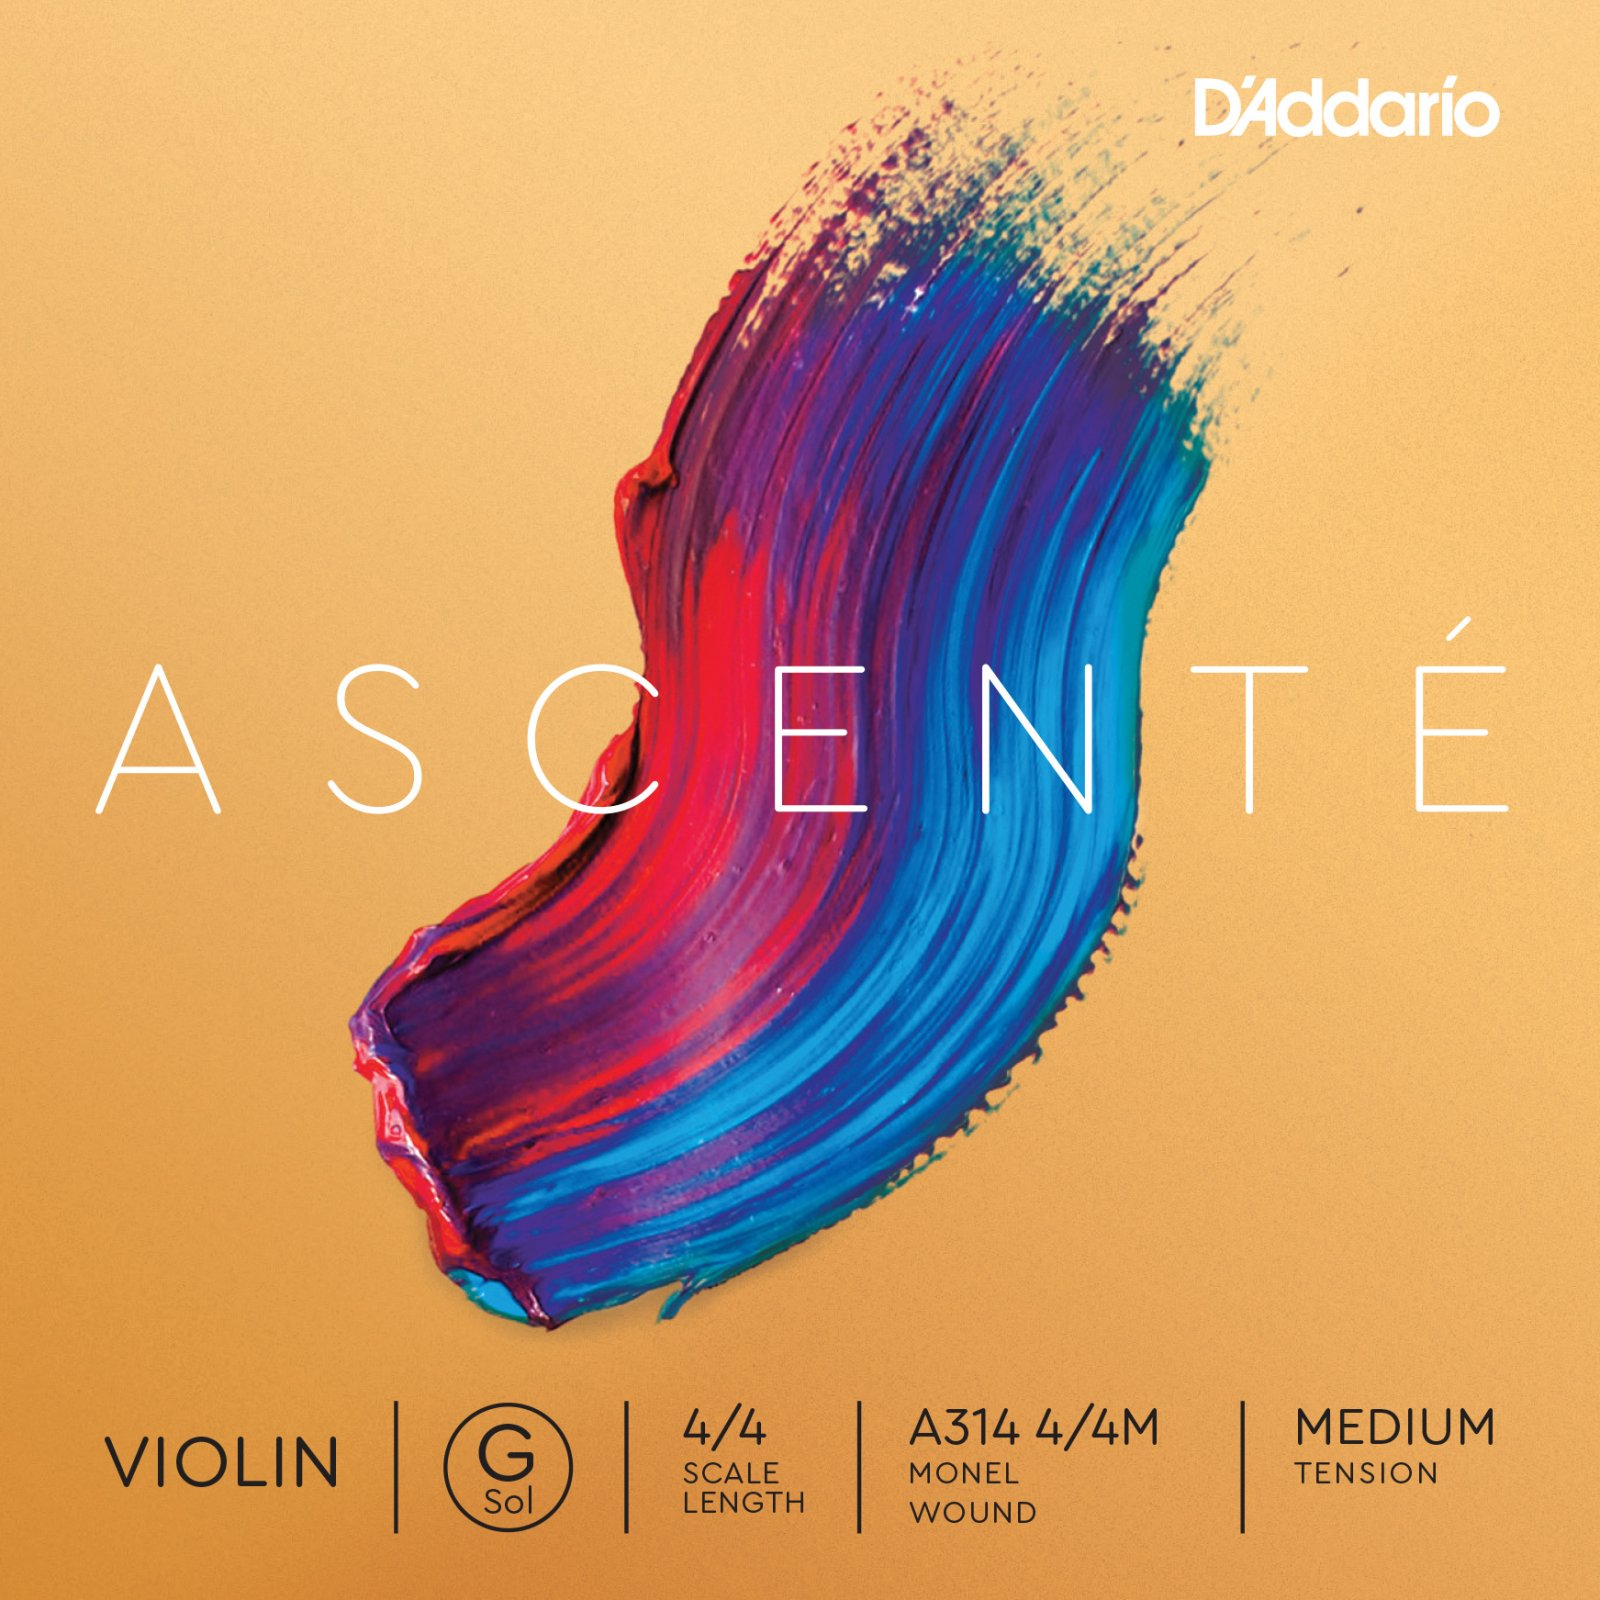 D'Addario Ascente Single G String - Medium Tension 4/4 3/4 1/2 (A314)